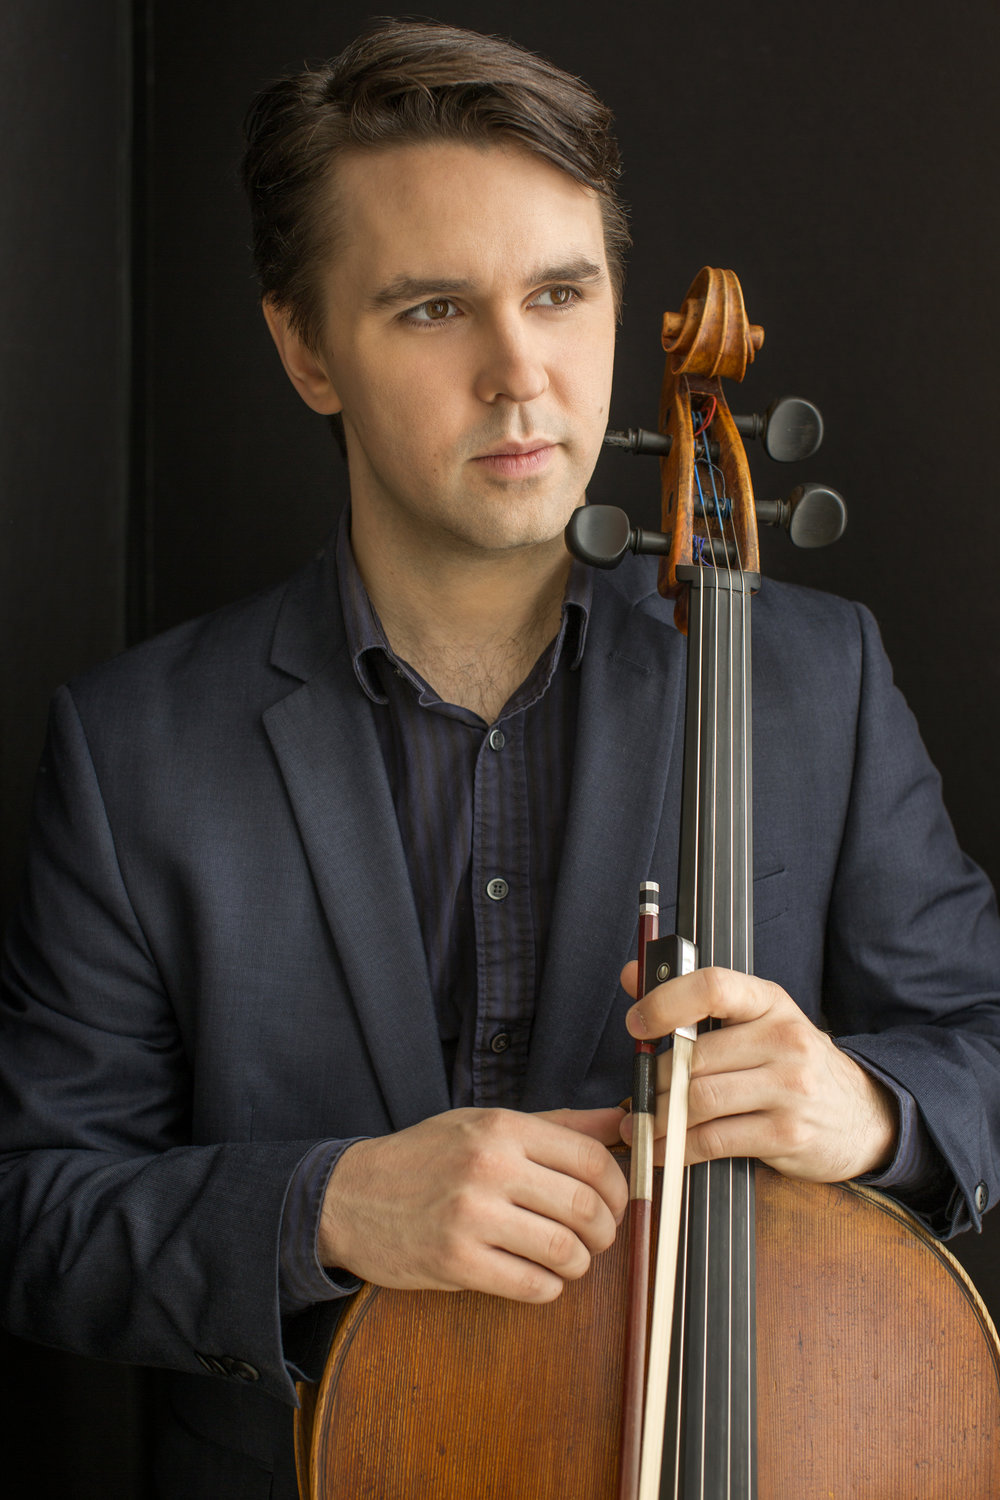 ANDREW JANSS Director of Prison Outreach & Program Development - The New York Times has hailed cellist Andrew Janss for his